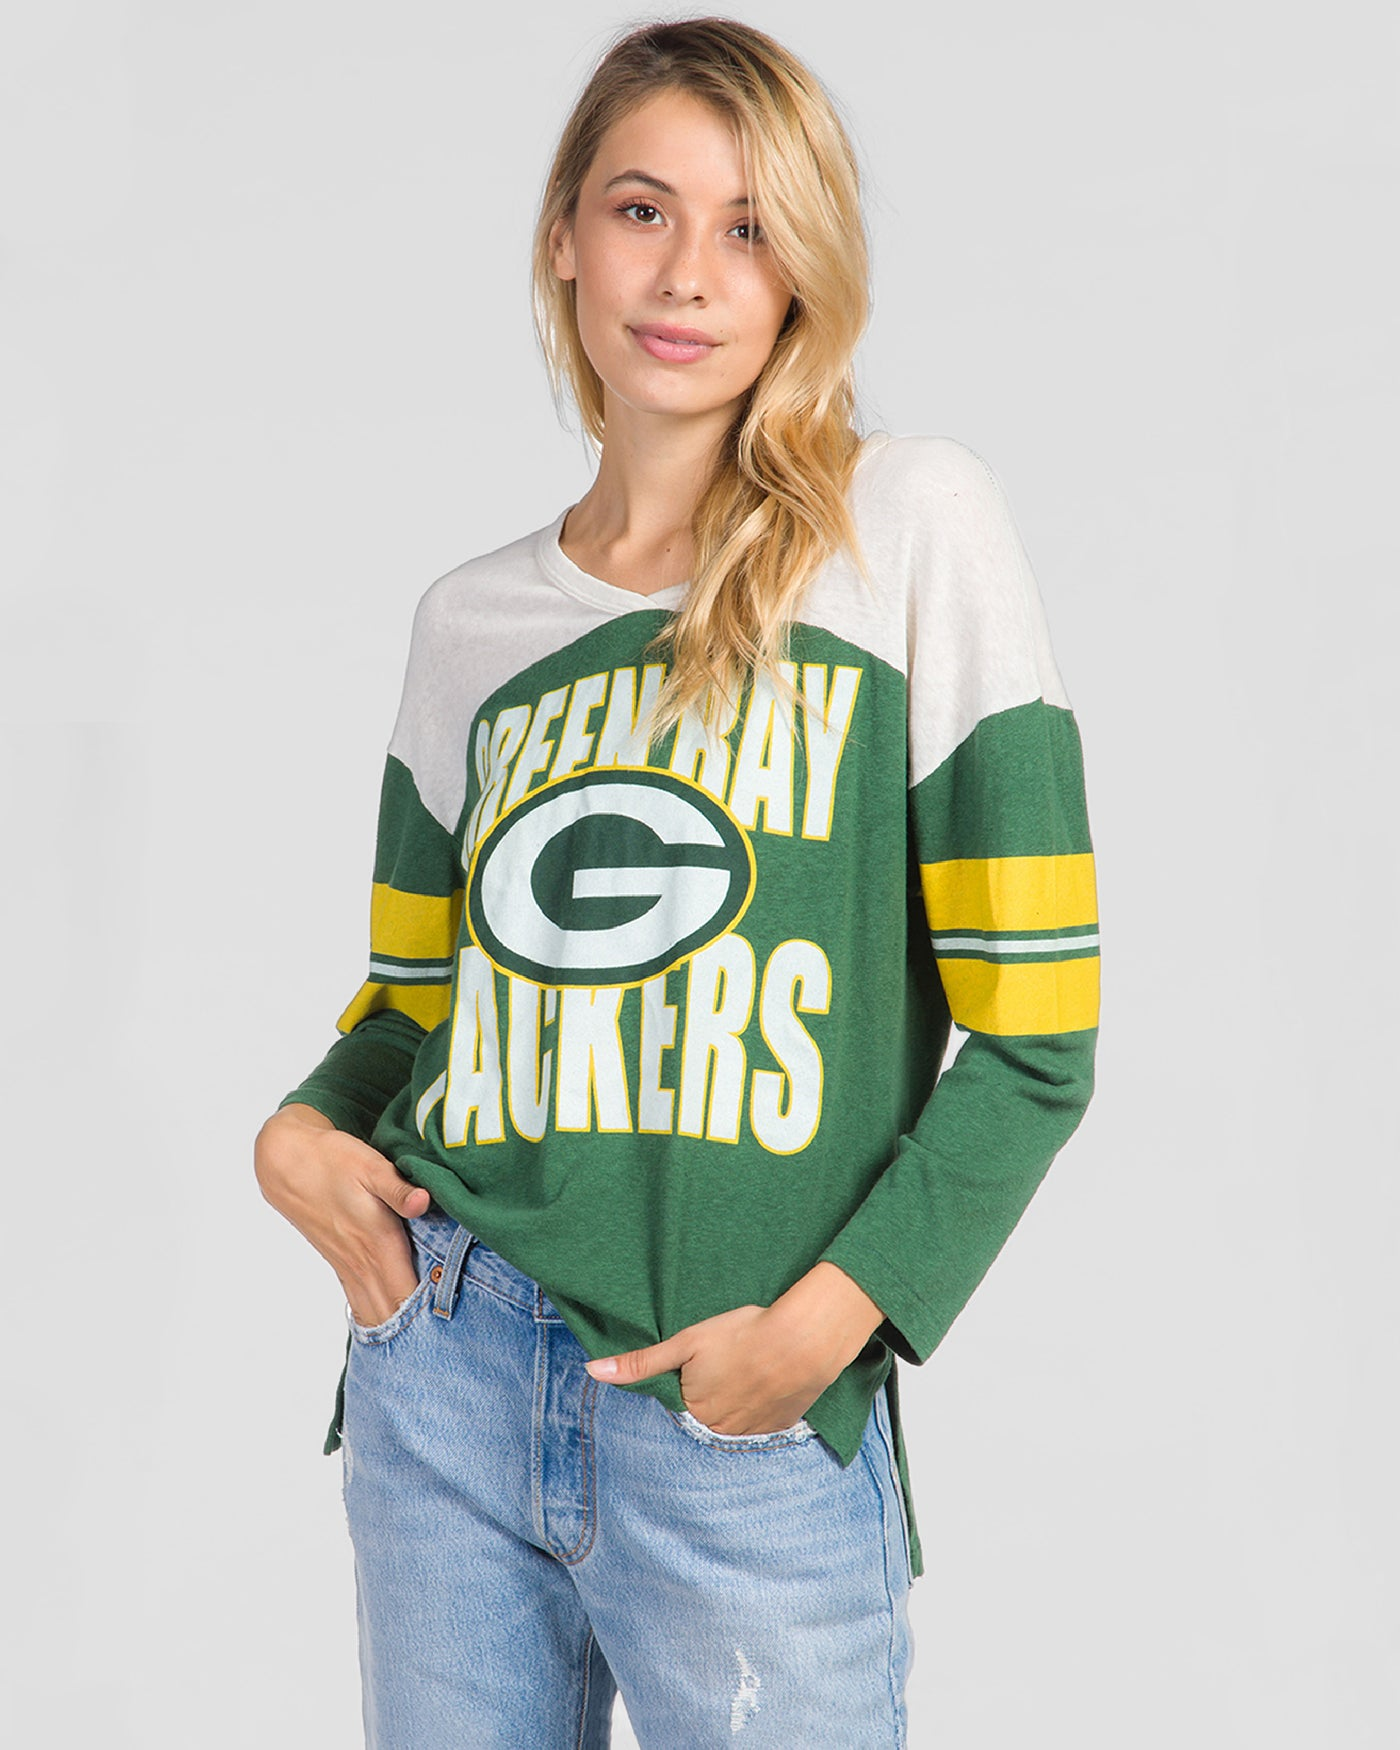 hot sale online 063d0 d873f WOMENS PACKERS JERSEY TOP - HUNTER GREEN / SUGAR / L